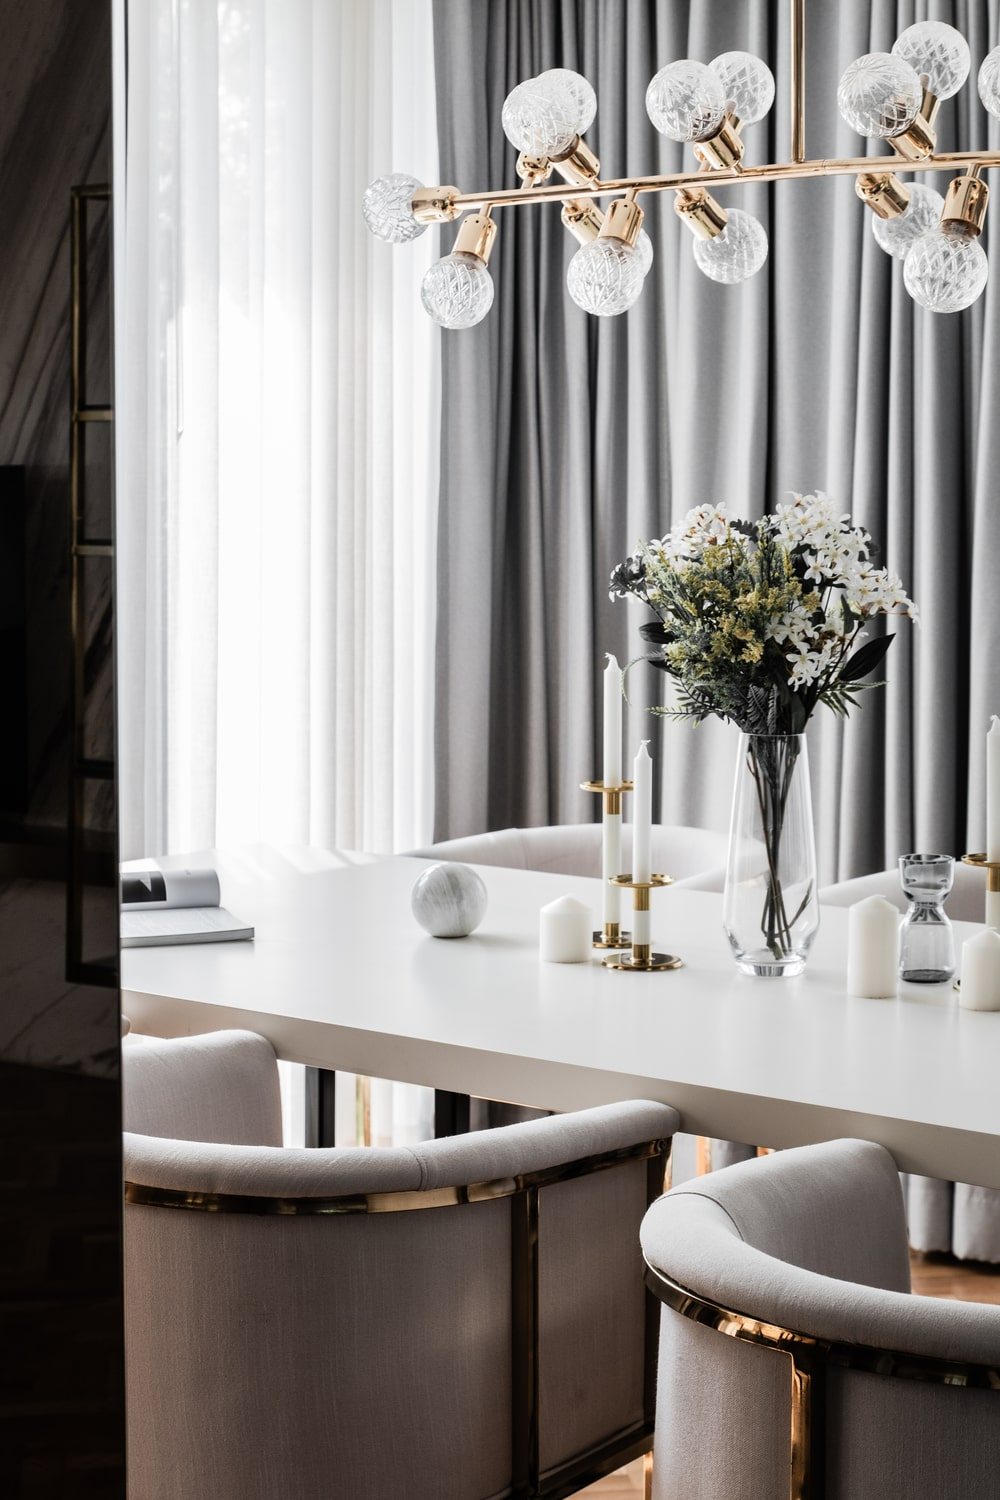 The white modern dining table of the dining area is topped with a set of modern decorative chandelier.